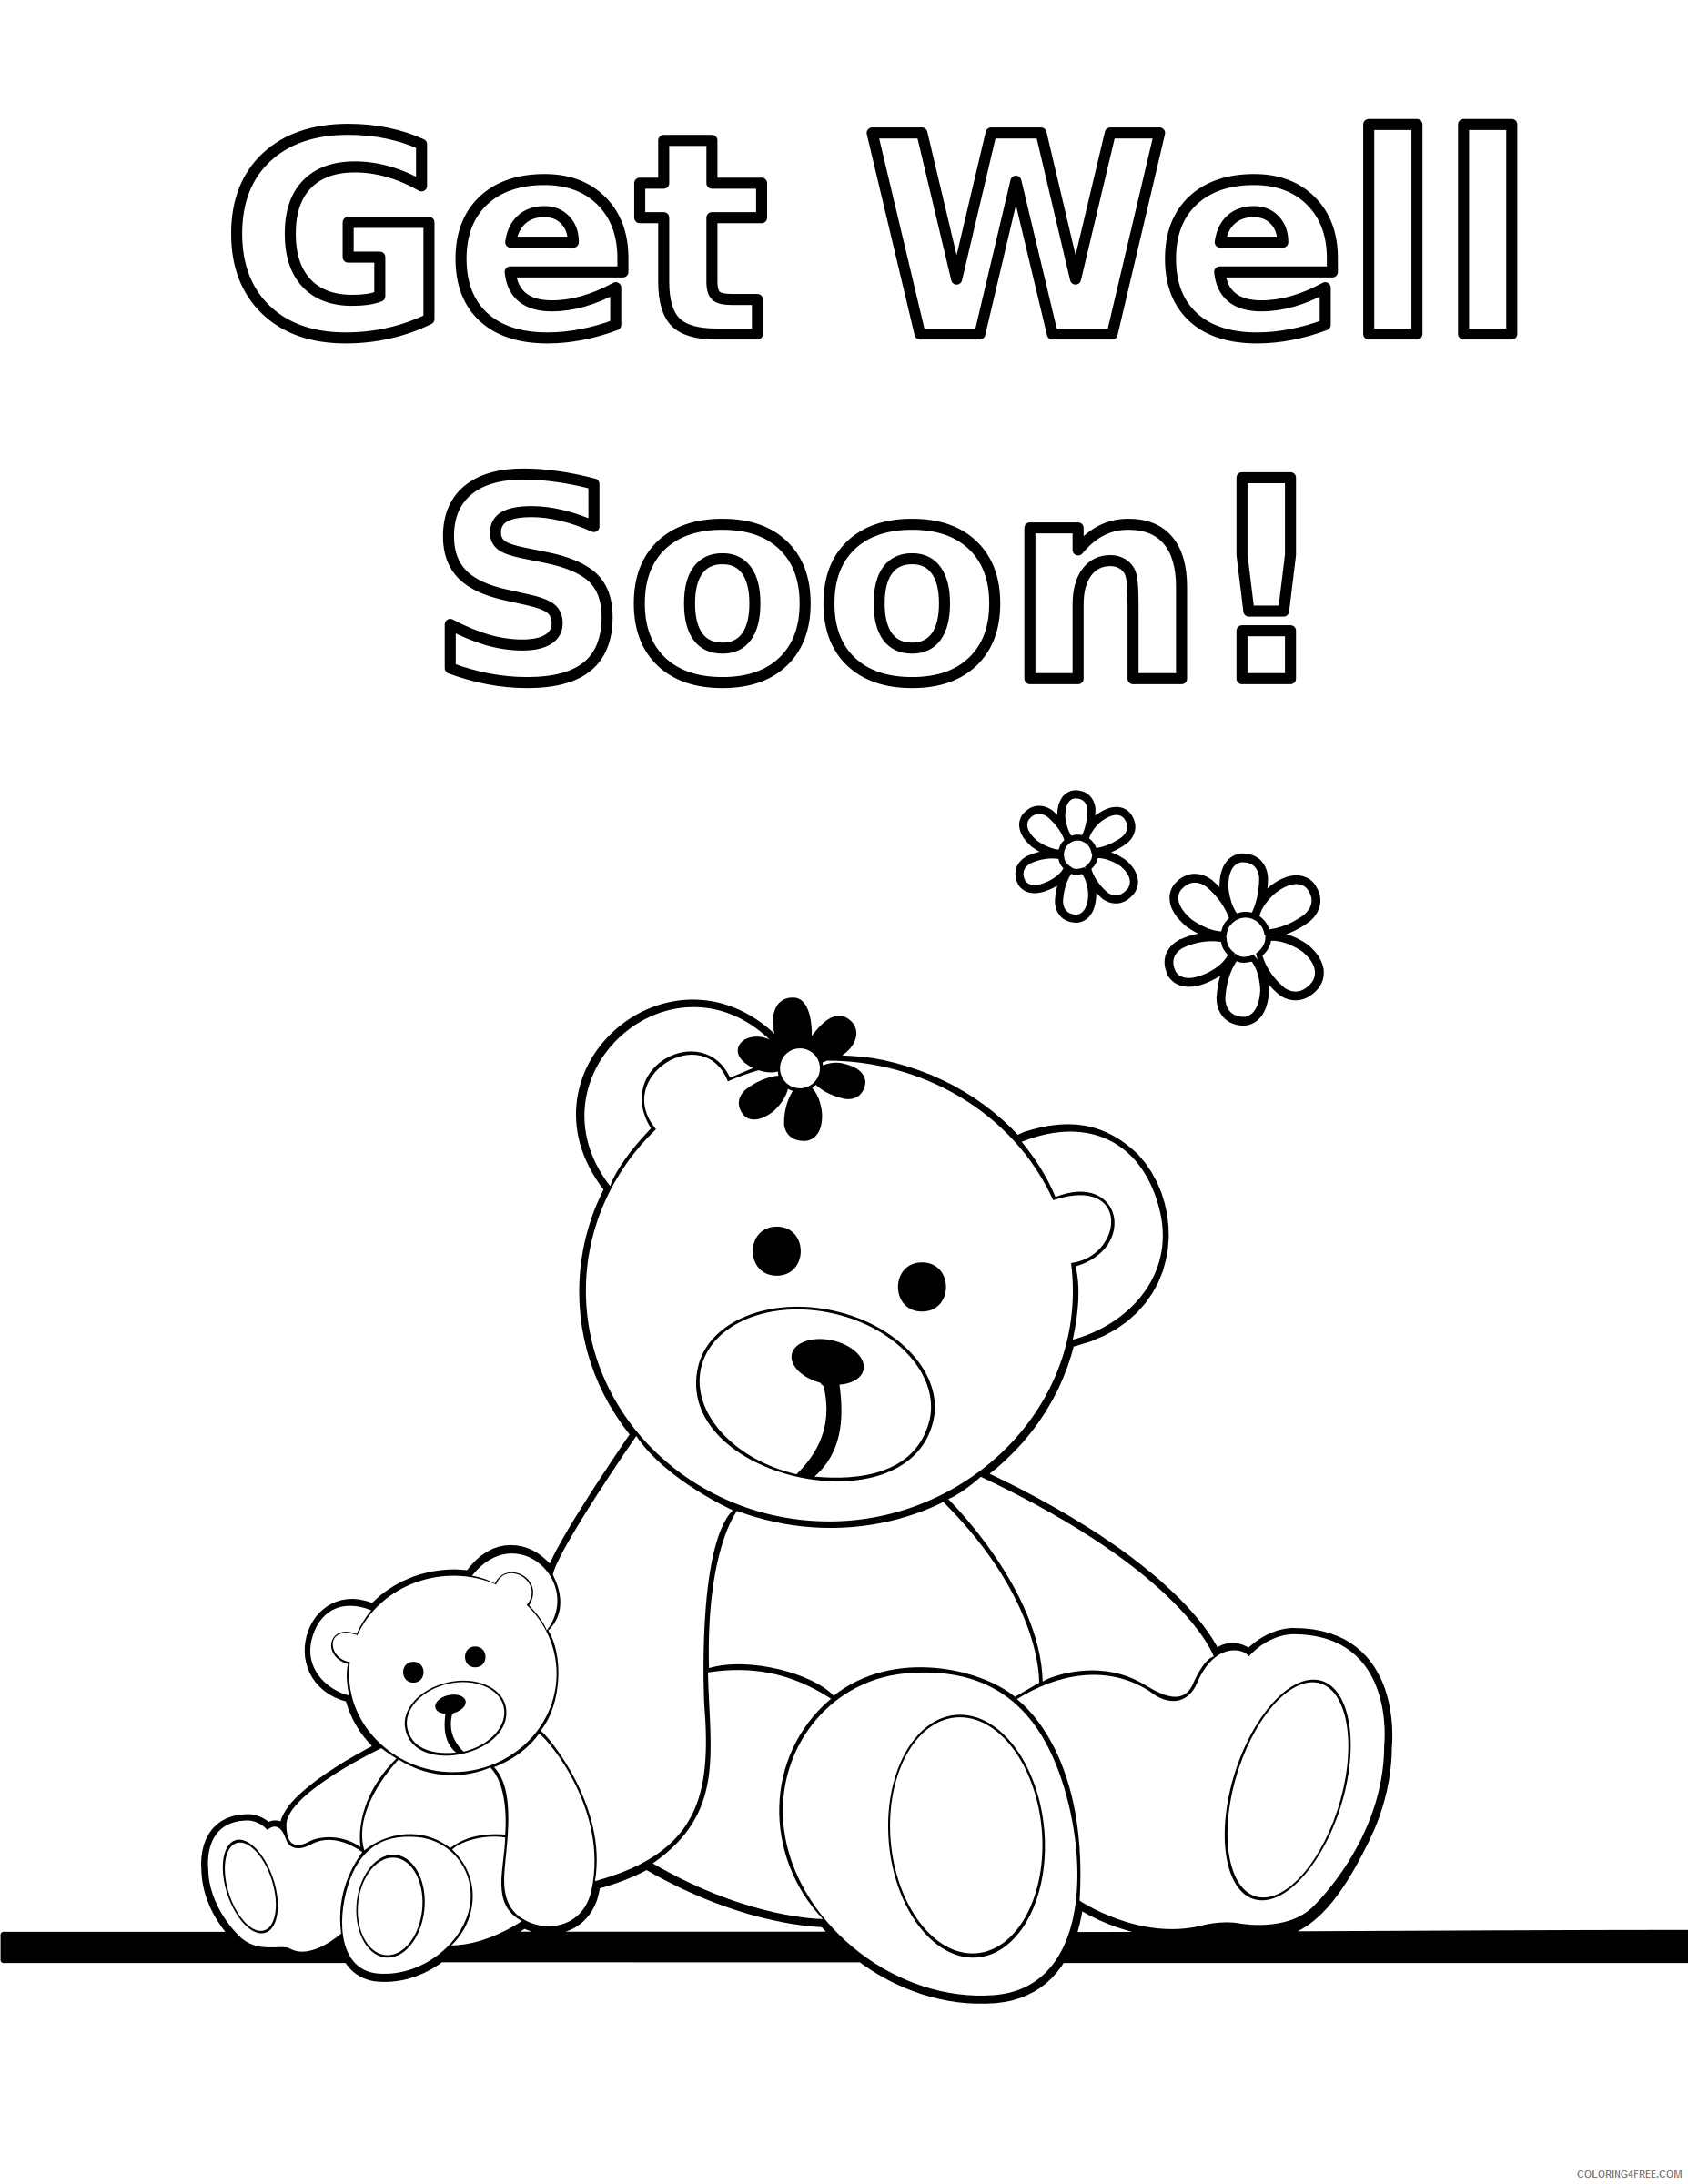 Teddy Bear Coloring Pages teddy bears black white Printable Coloring4free